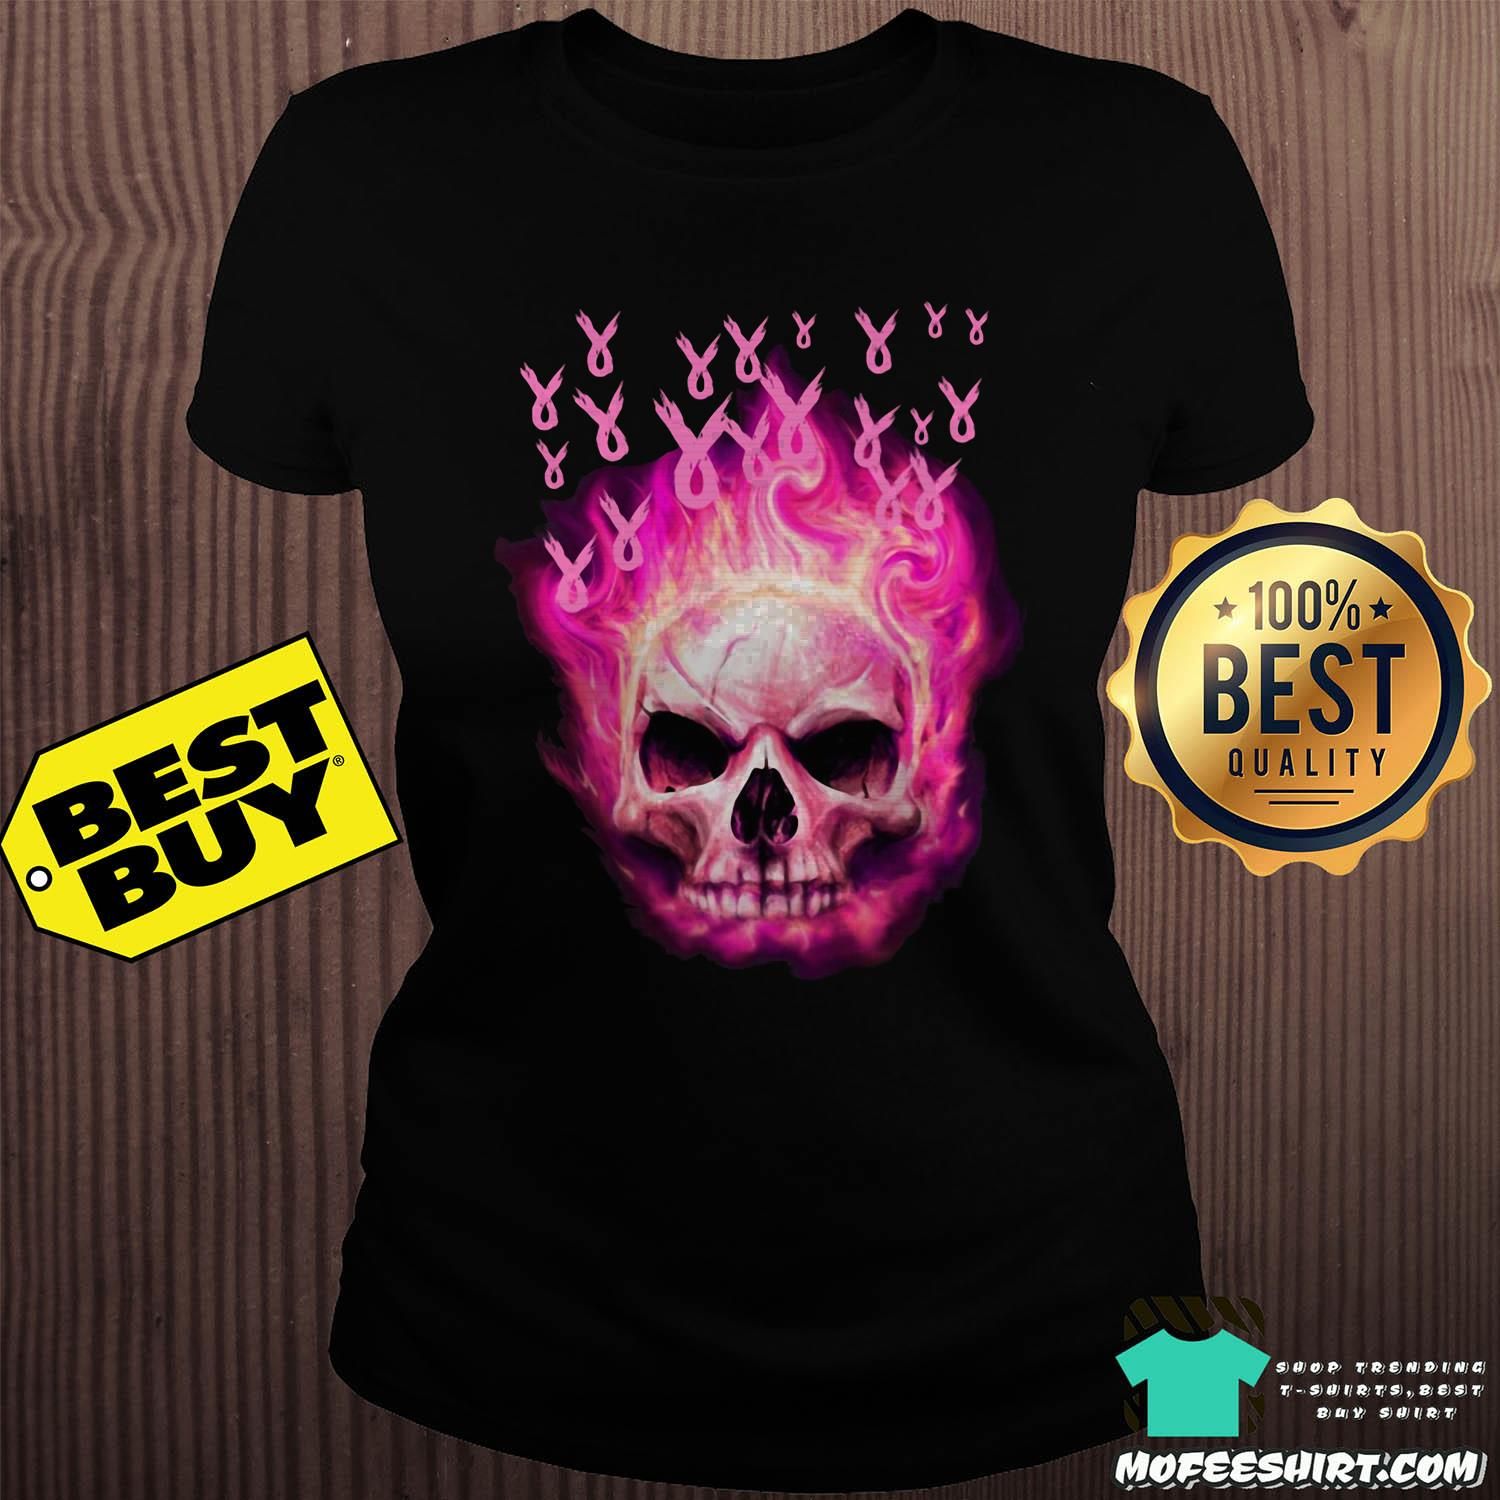 halloween the breast cancer awareness ladies tee - Halloween The Breast Cancer Awareness shirt